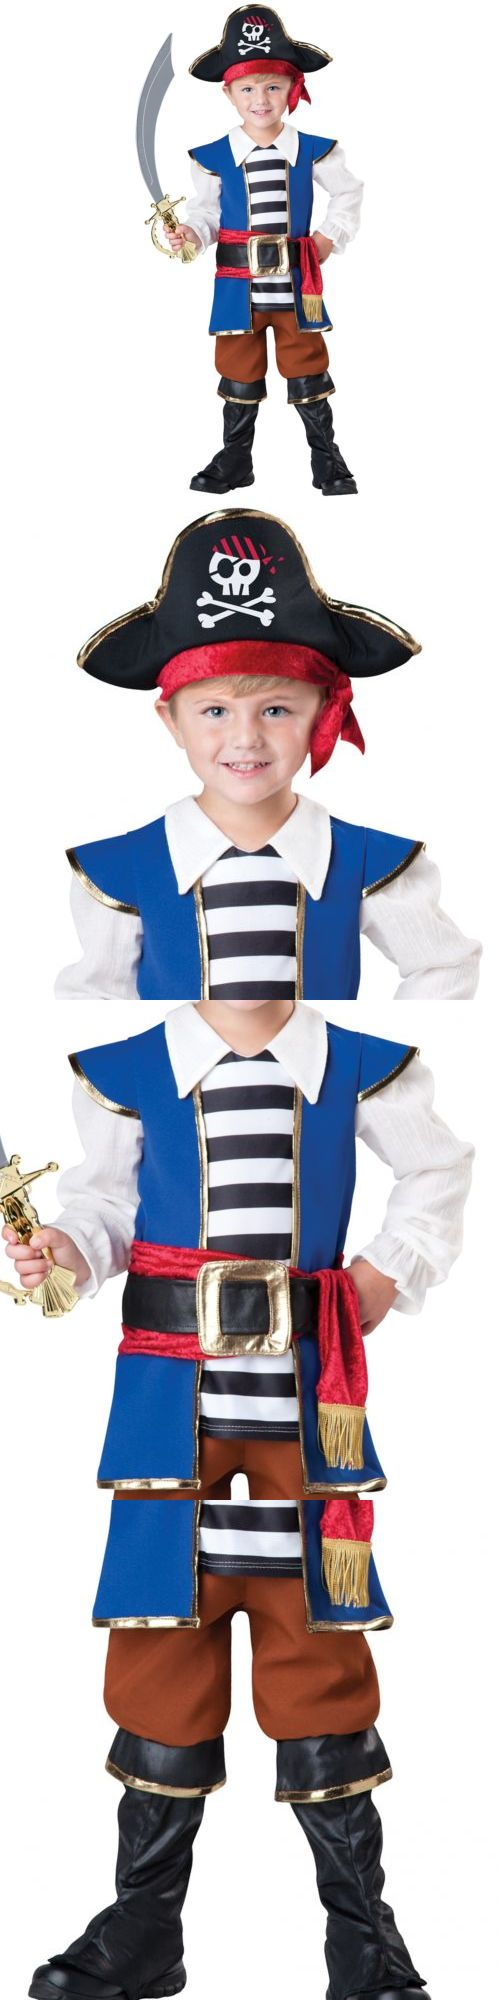 Best 25+ Toddler pirate costumes ideas on Pinterest | Pirate ...